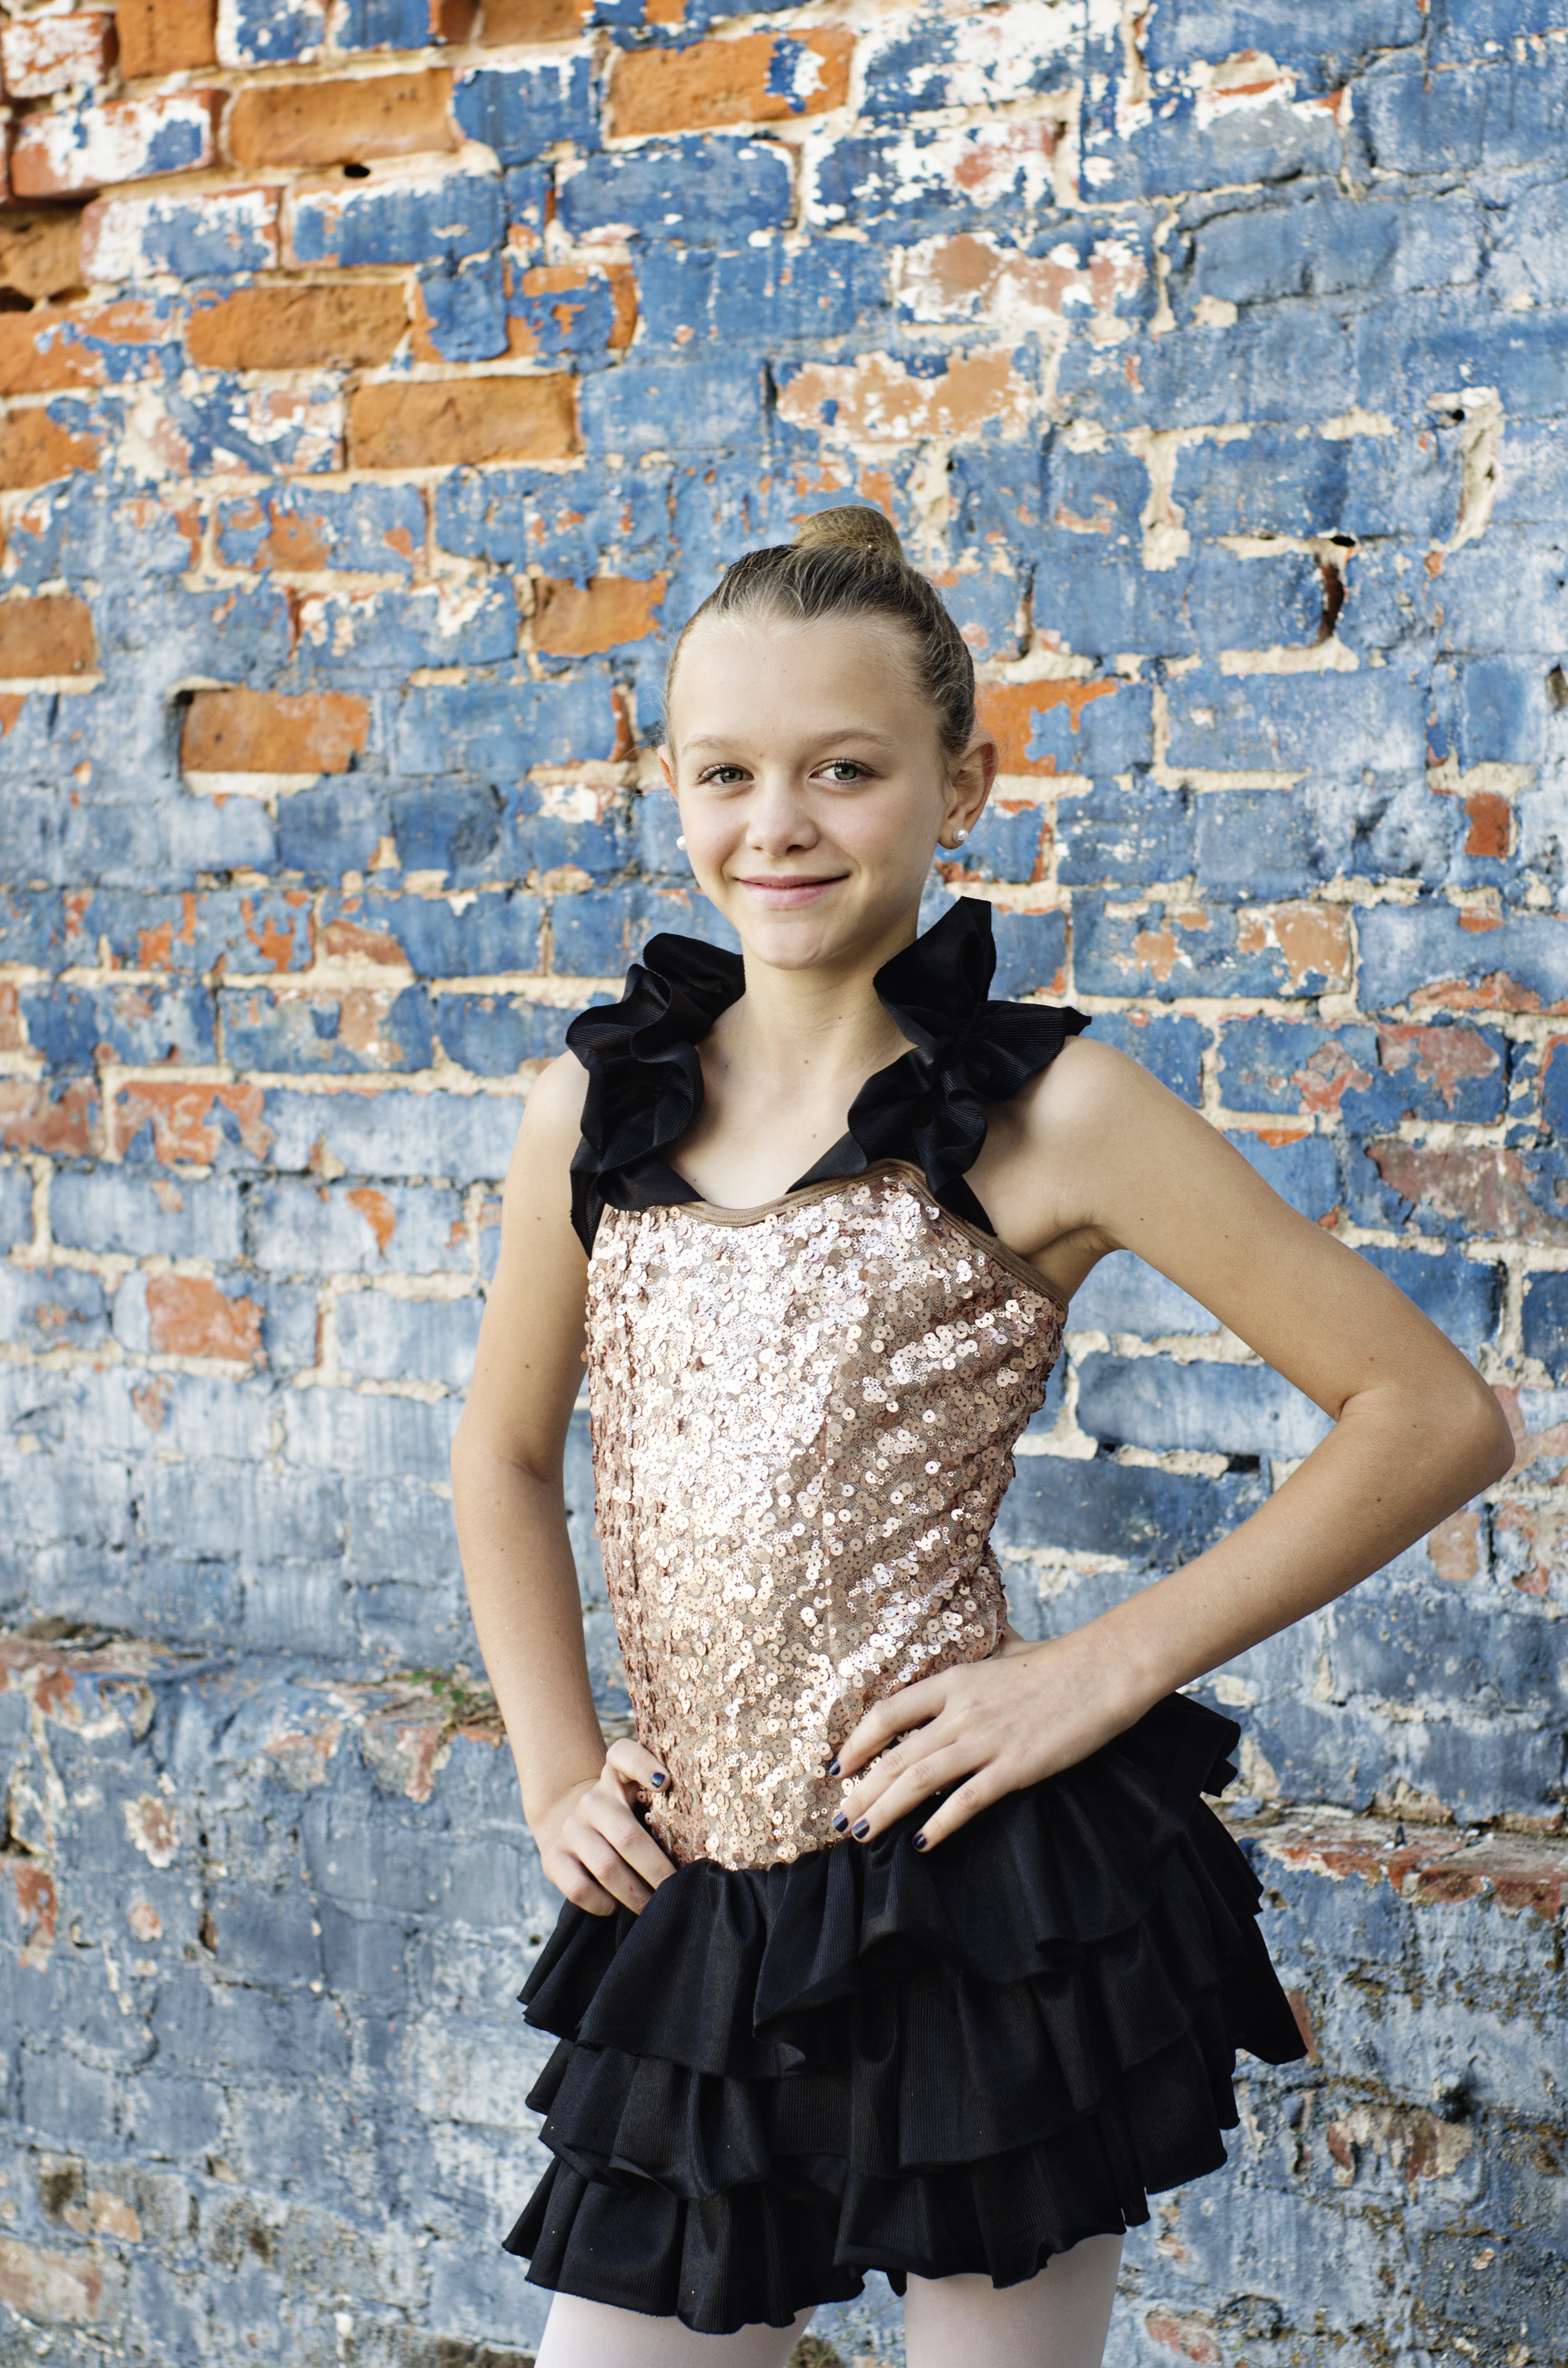 Jackie_Daily_Photography_Tiny_Dancer_082.jpg